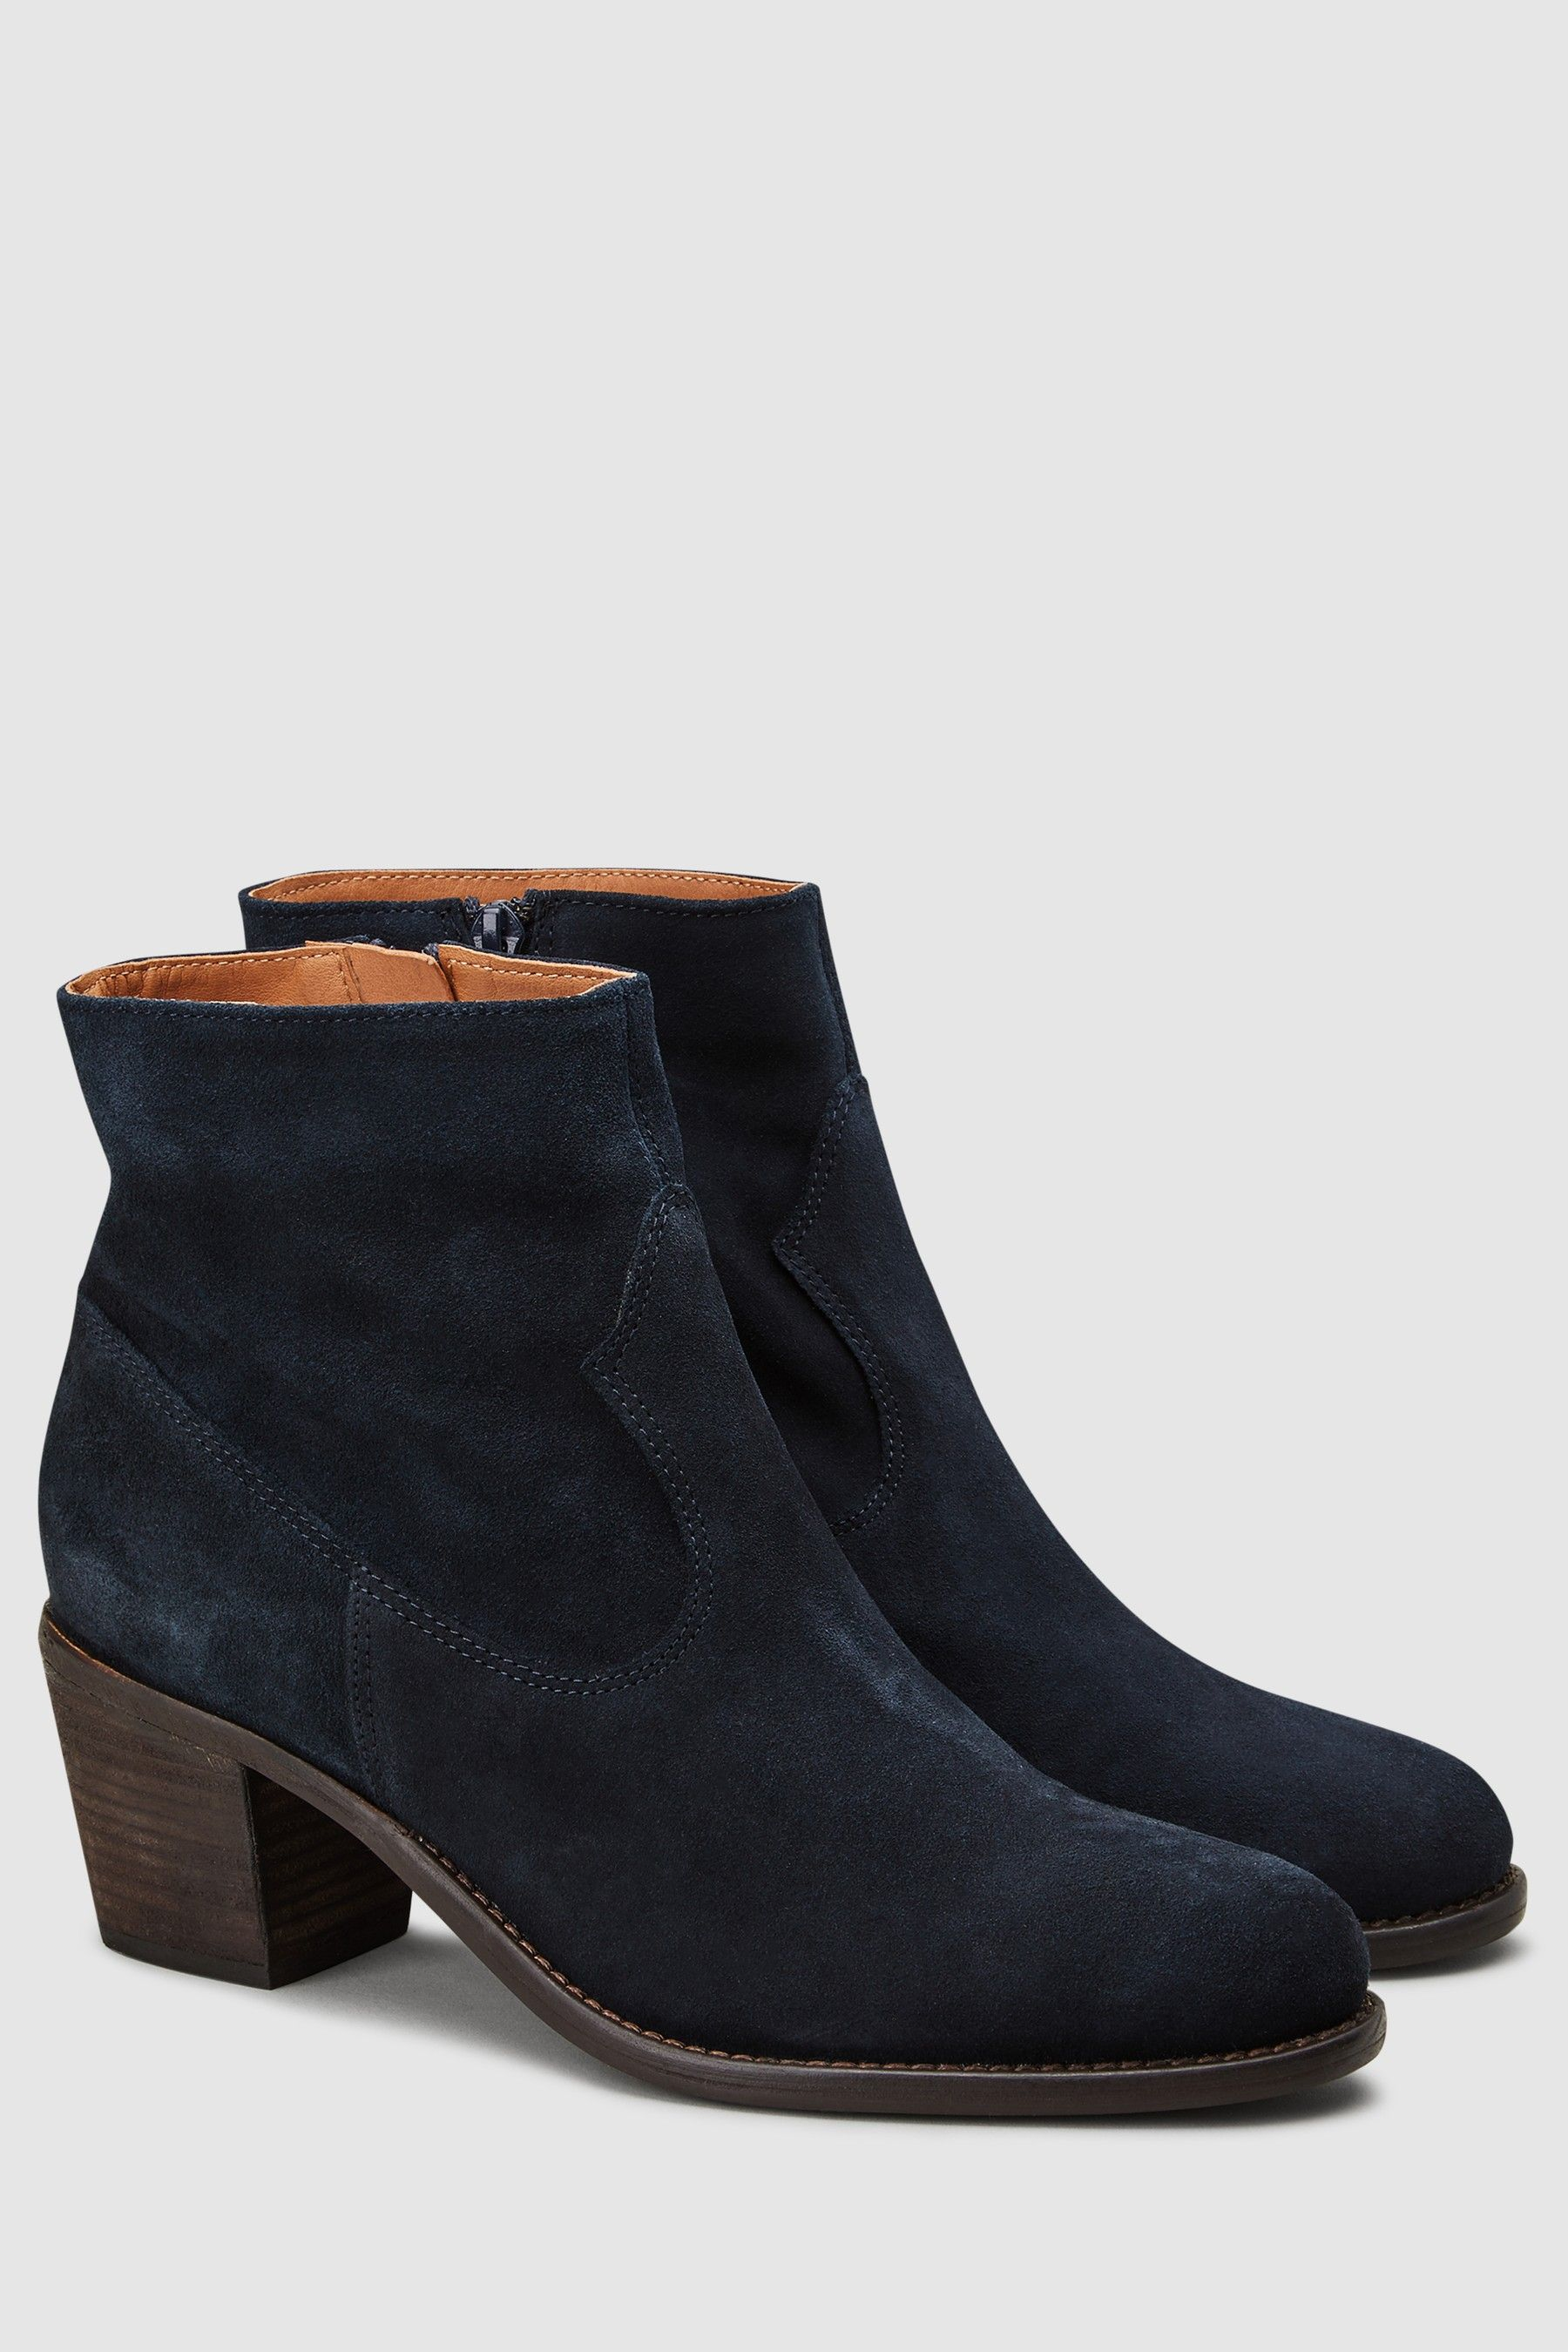 Navy Suede Western Ankle Boots - Blue